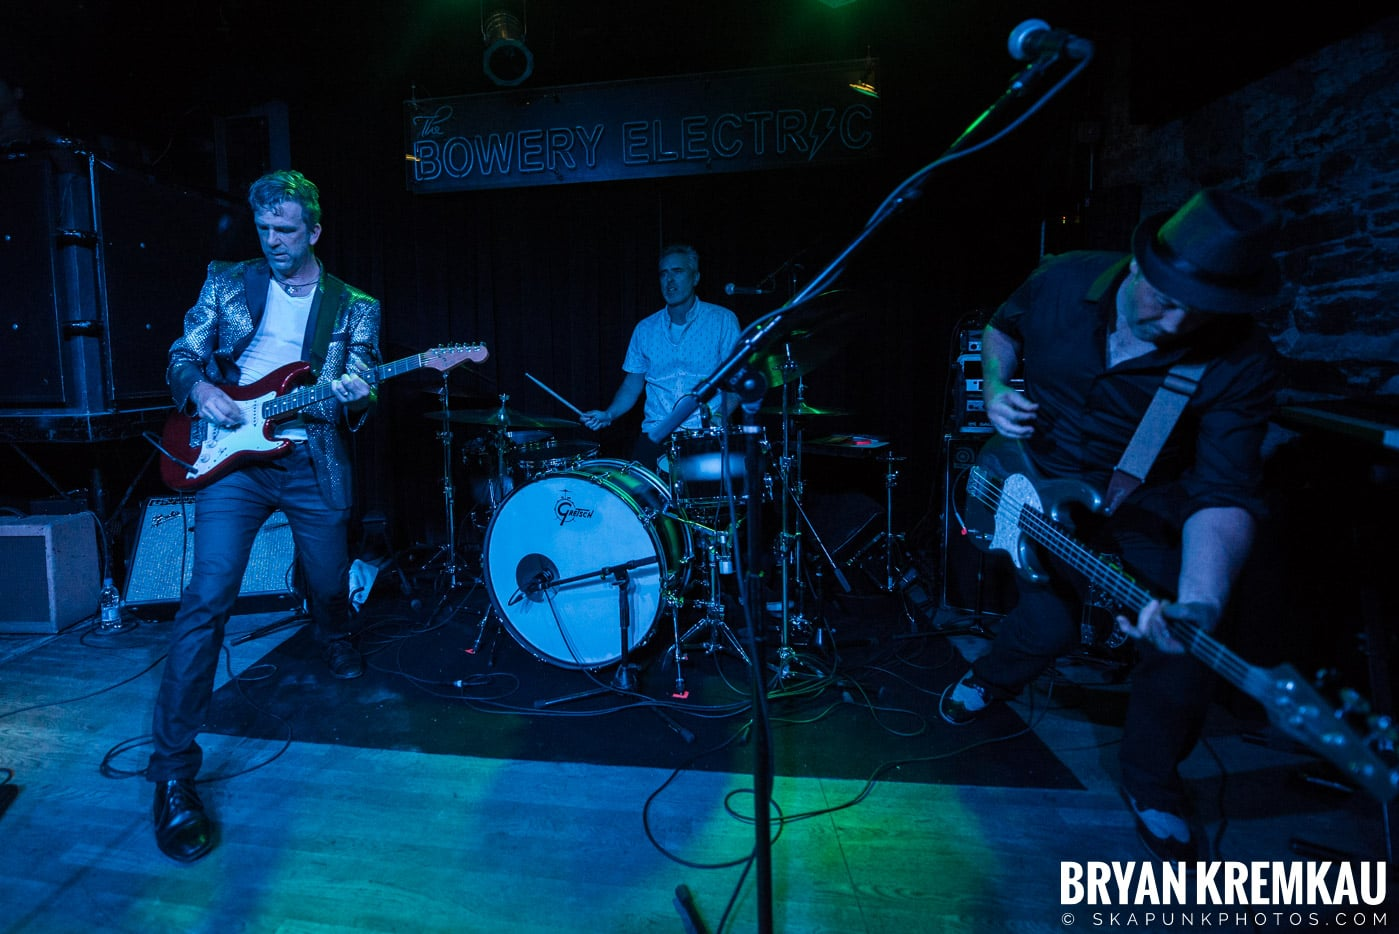 The Push Stars @ The Bowery Electric, NYC - 9.29.17 (11)